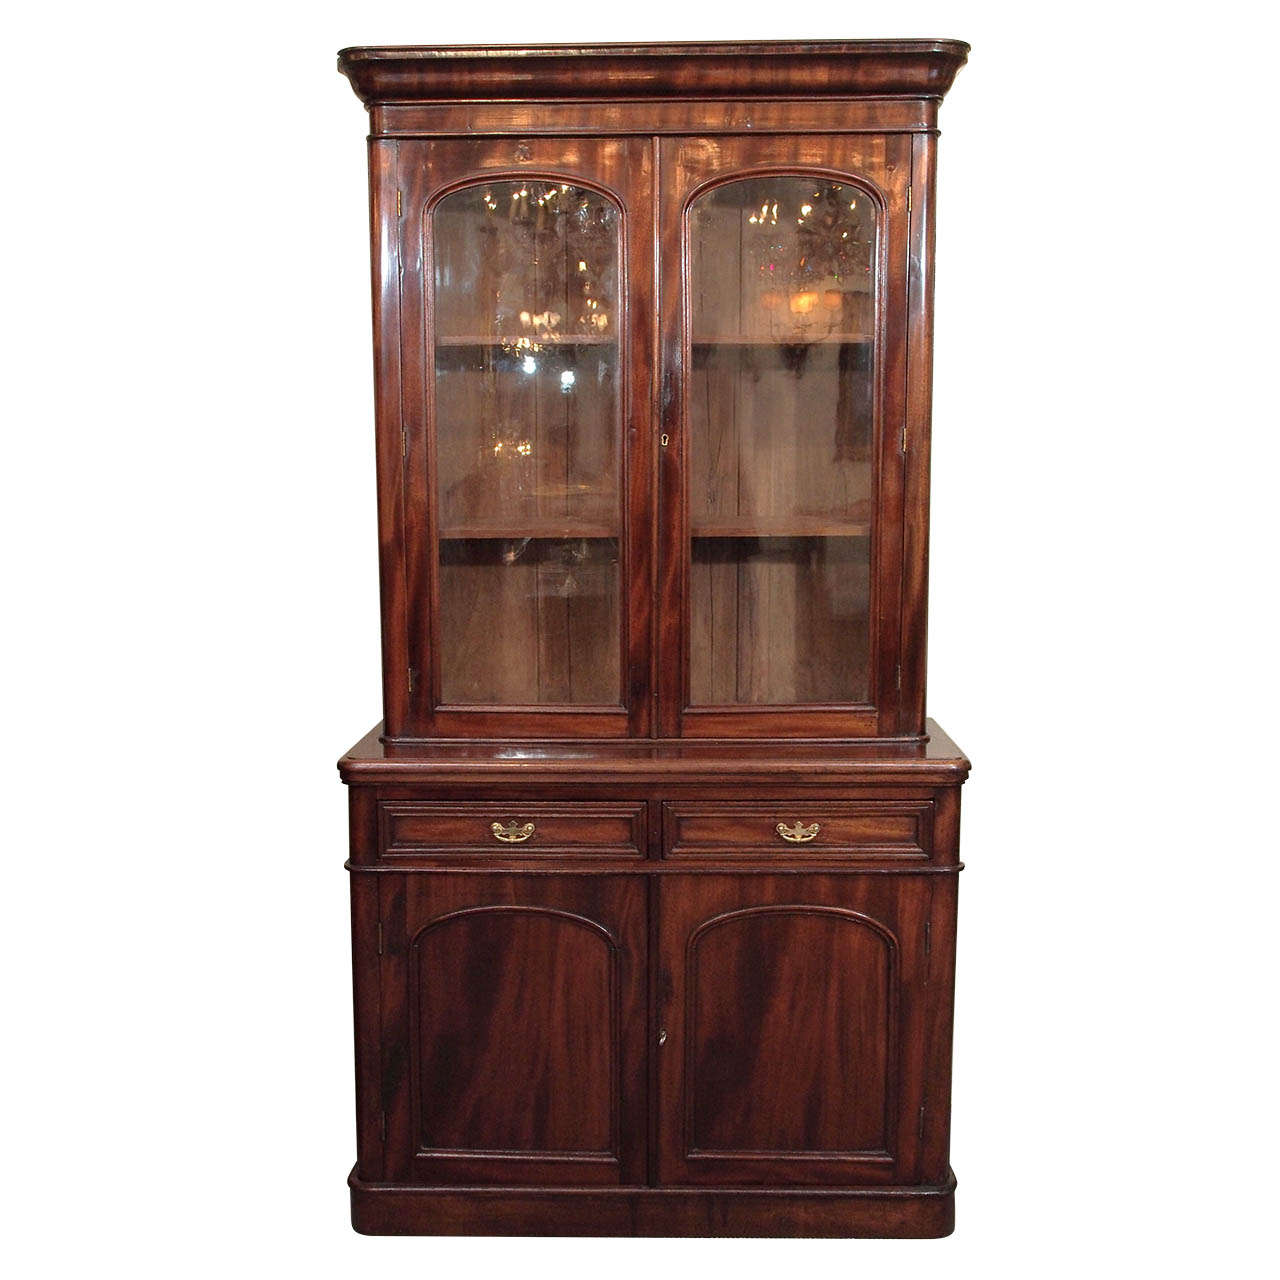 Antique English Mahogany Bookcase. For Sale At 1stdibs